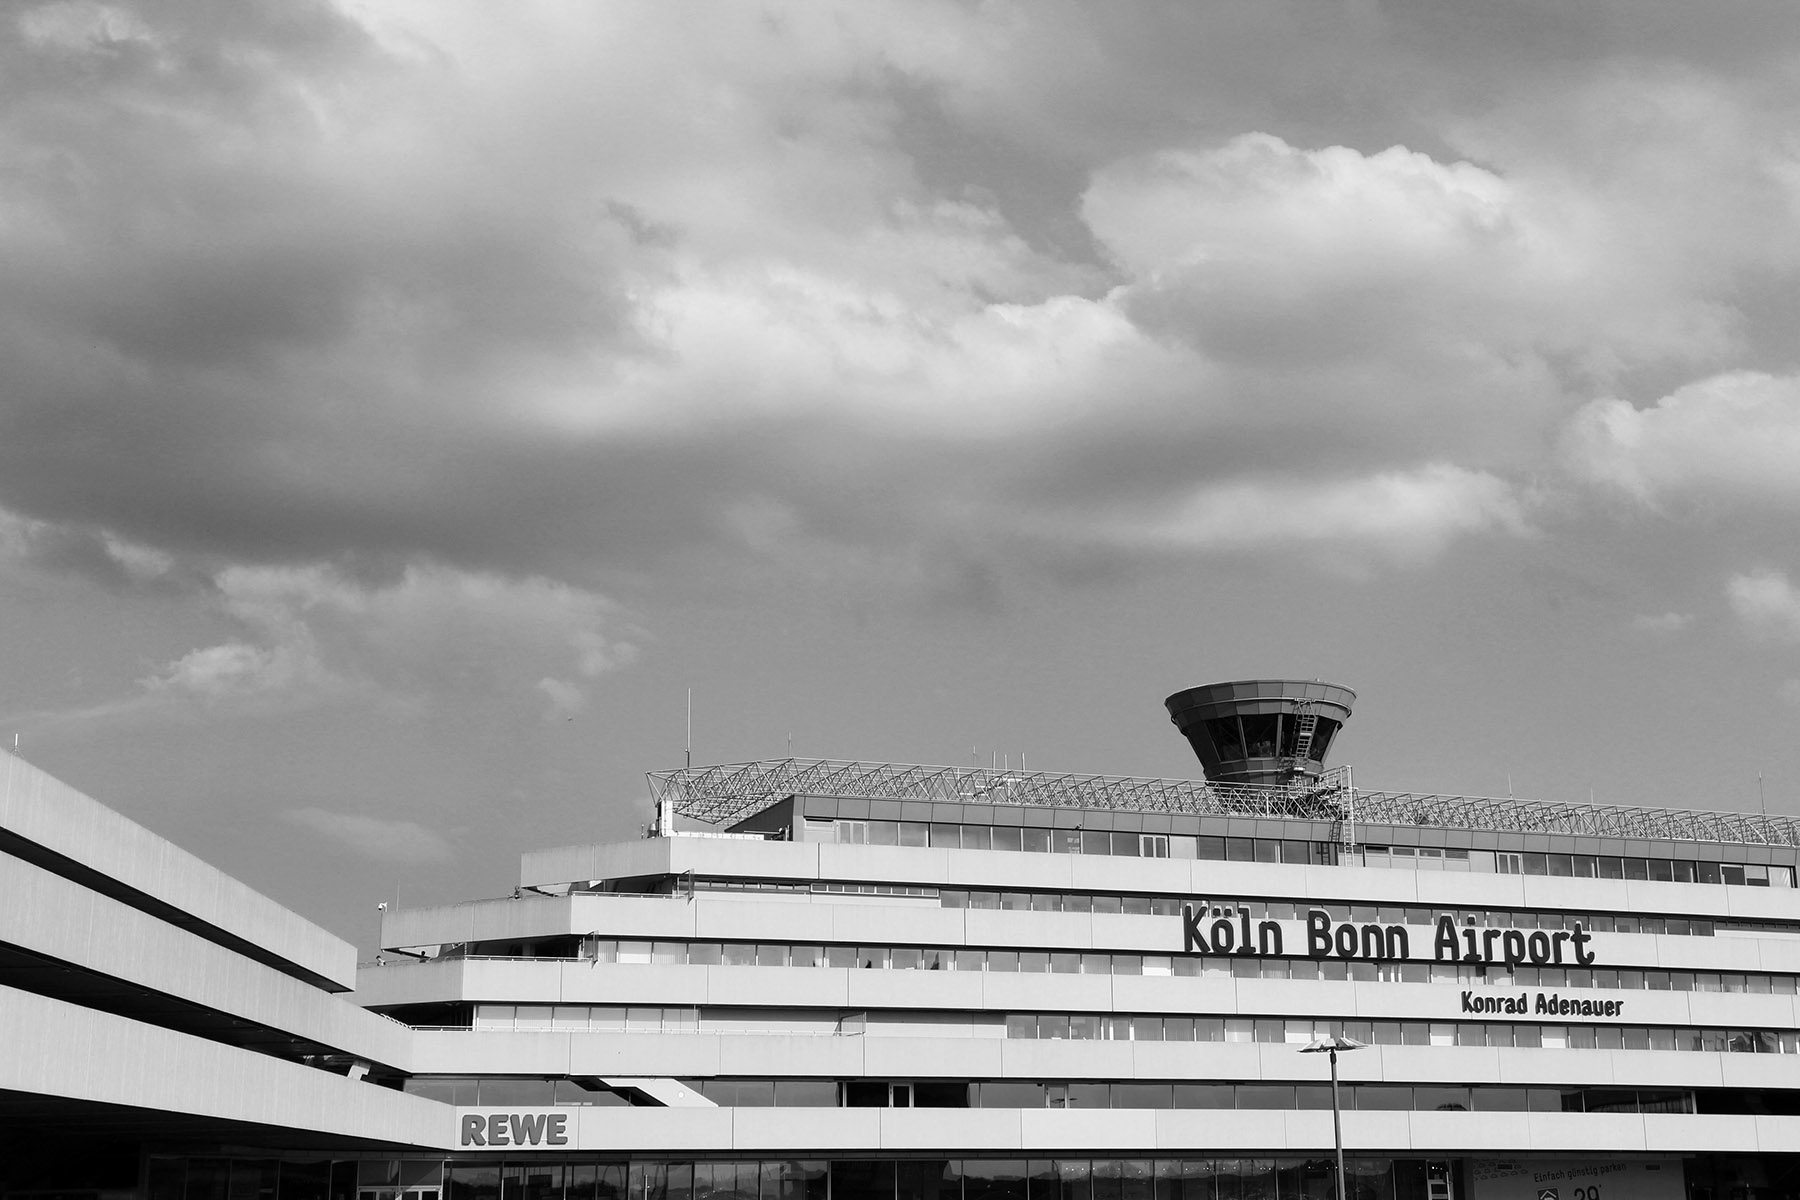 "Cologne Bonn Airport. His drive-in concept: an airport with short ways. The ""Starwalk"" extension was planned by Helmut Jahn, as were Terminal 1 (opened in 2000) and the train station (opened 2004)."